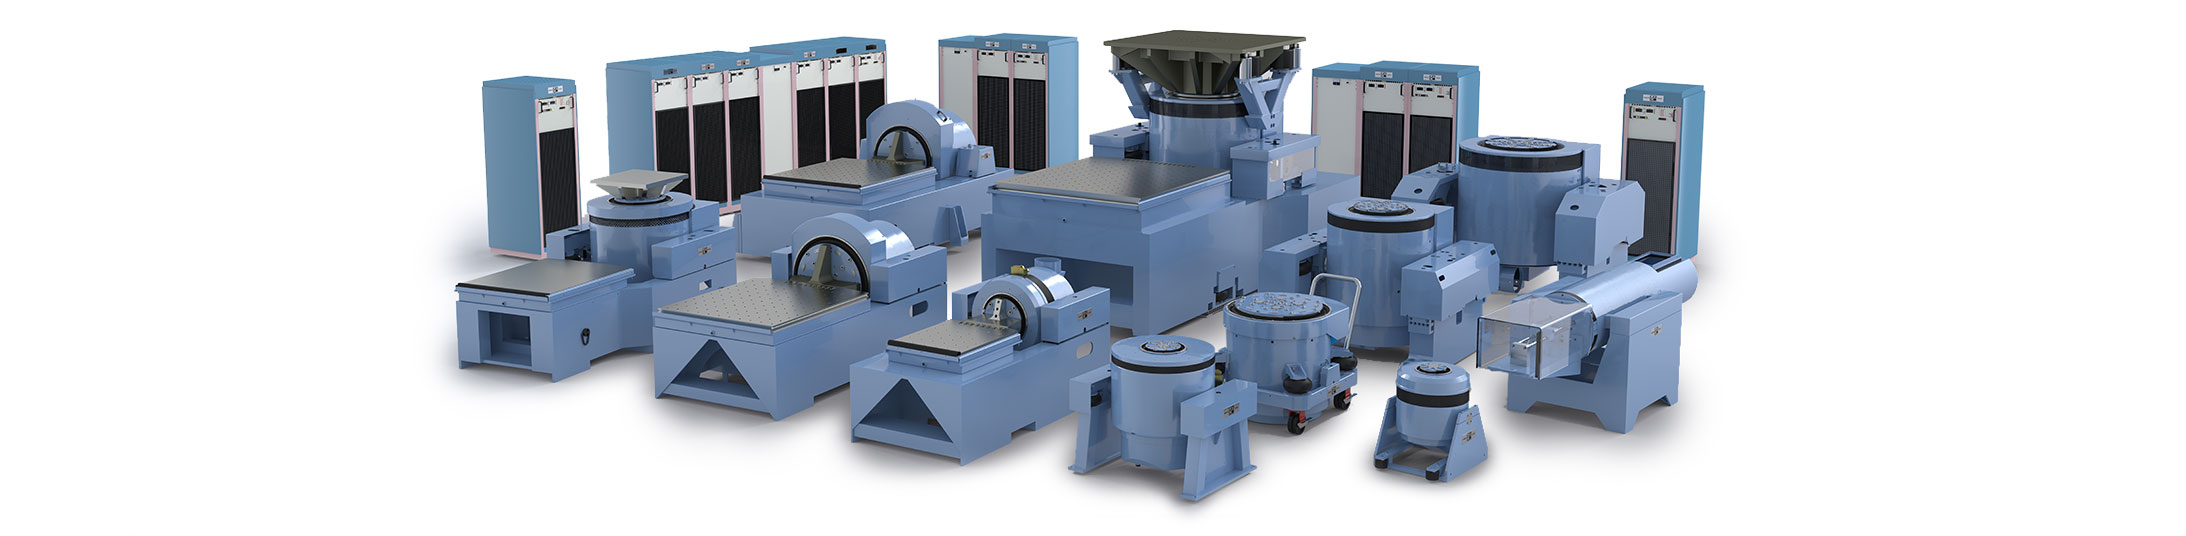 Global Electrodynamic Shaker Systems Market Industry Perspective,  Comprehensive Analysis and Forecast 2020-2025 – Galus Australis